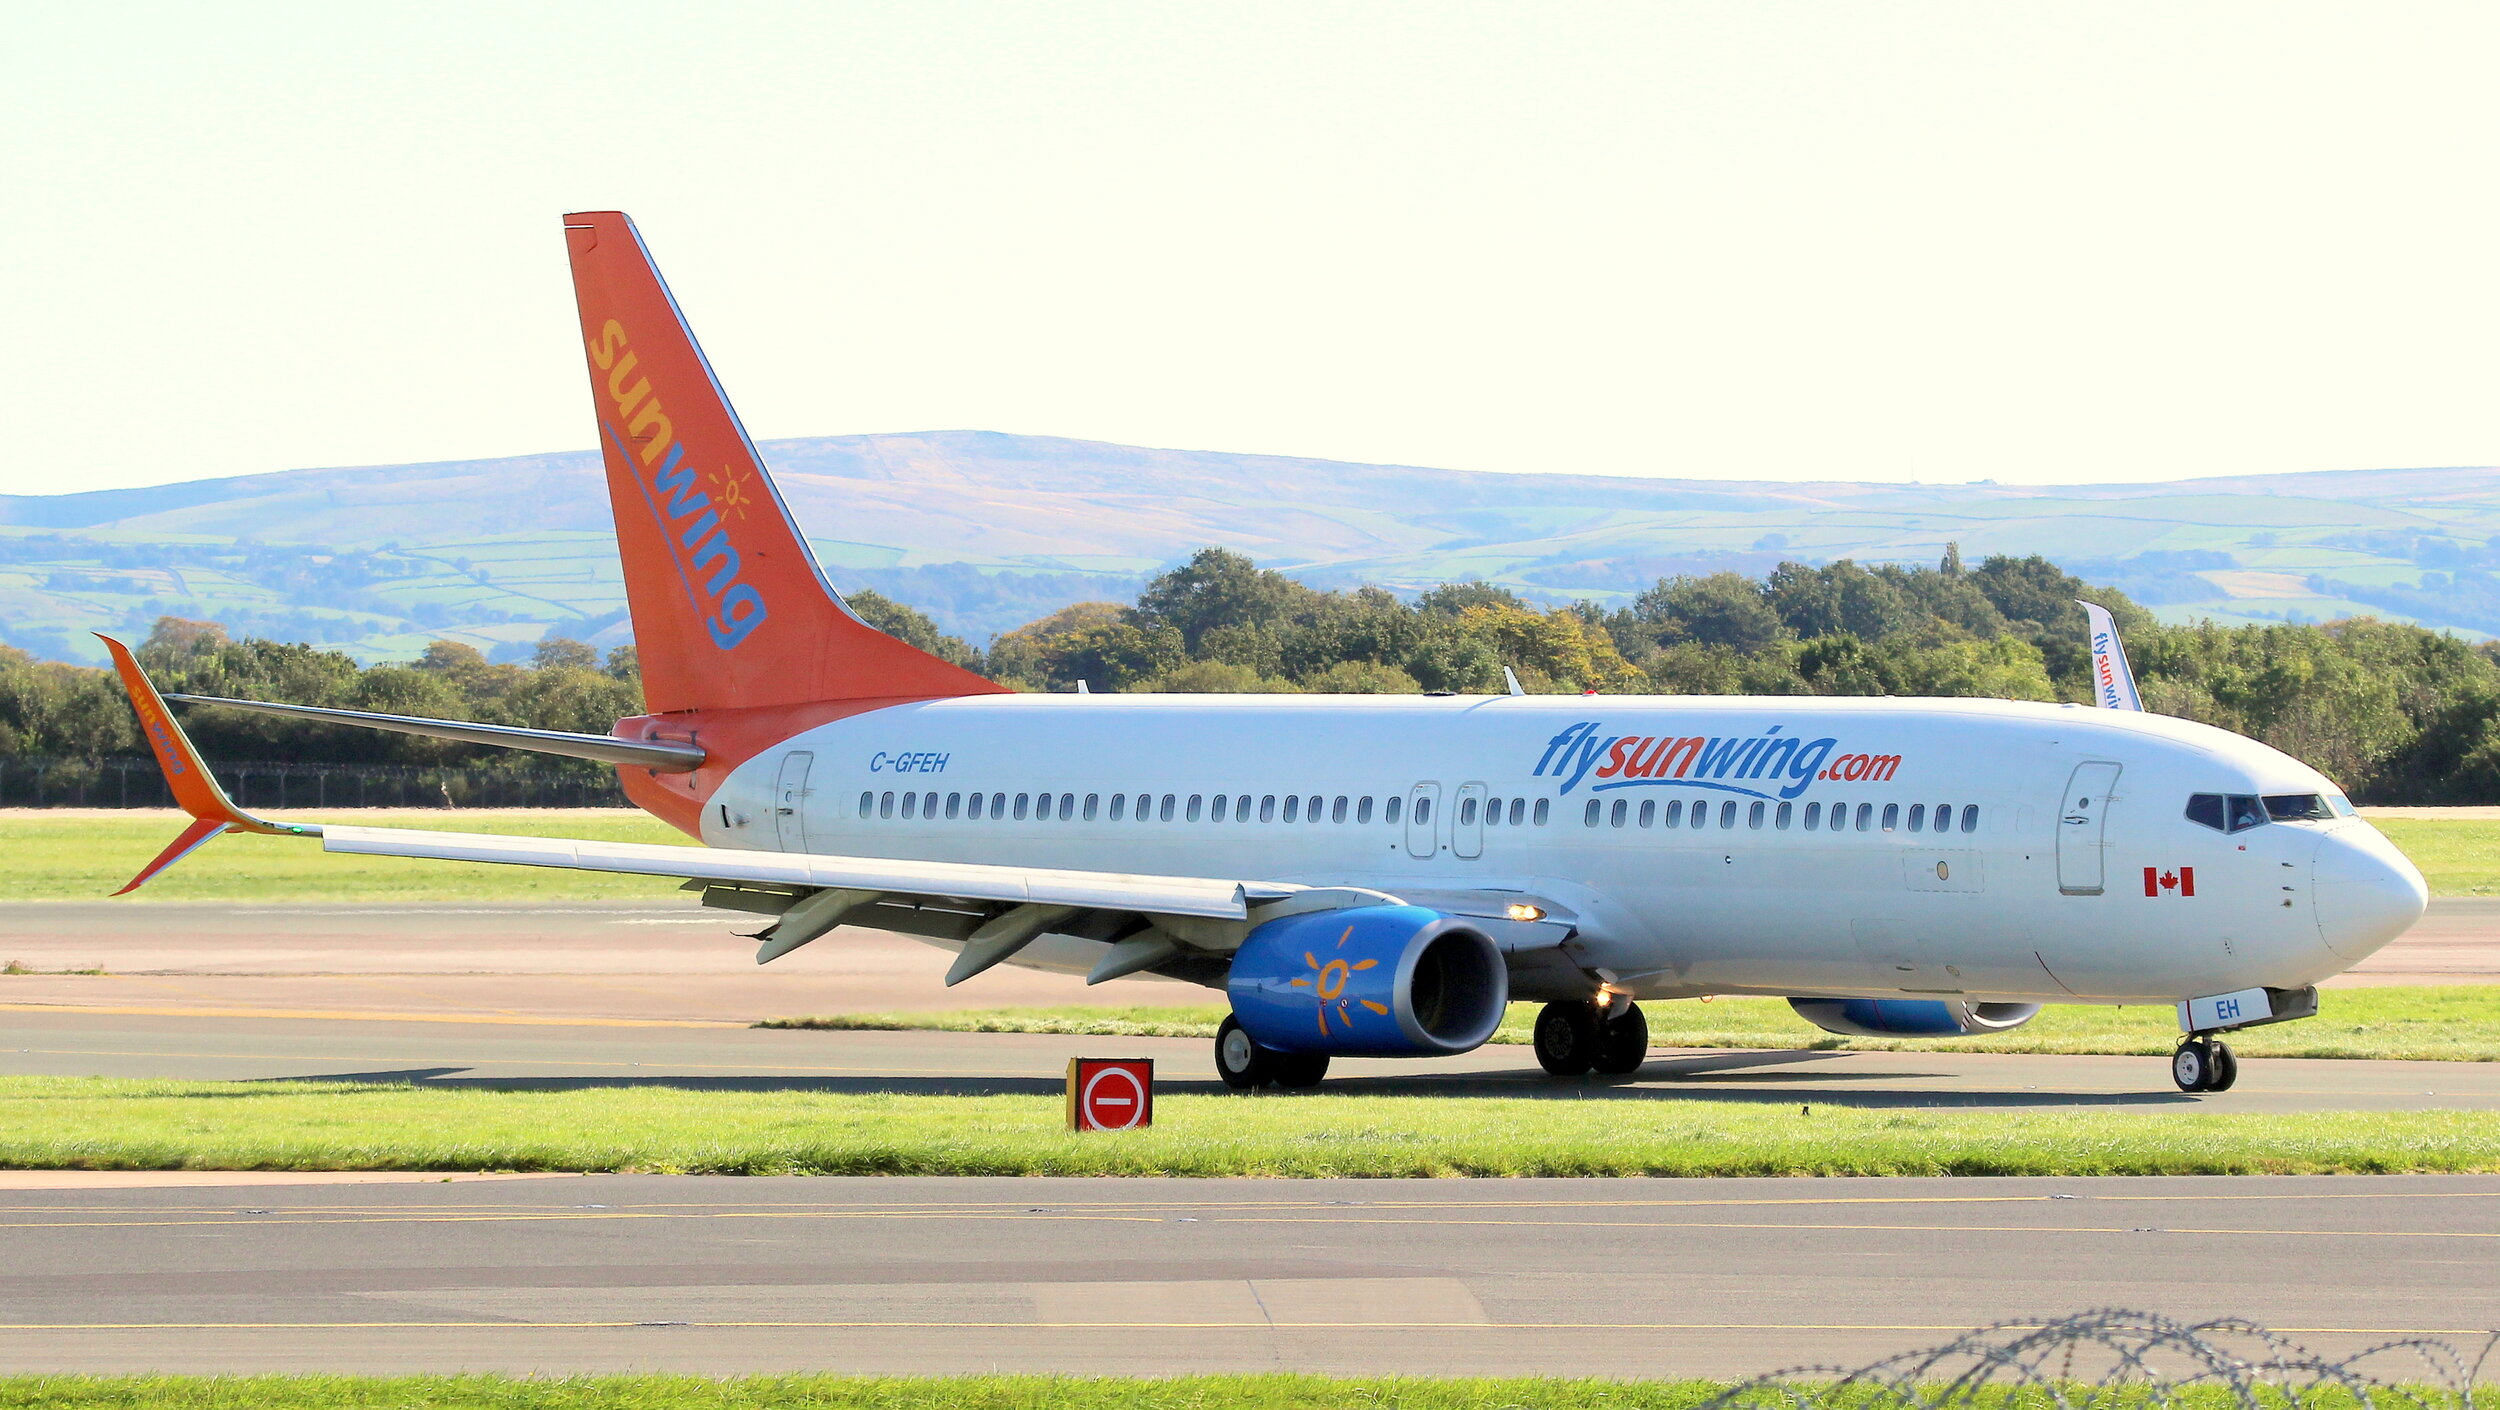 Sunwing B737-800 C-GFEH vacating Runway 23 Right on 2nd October 2019. Photo: Geoff Ball.